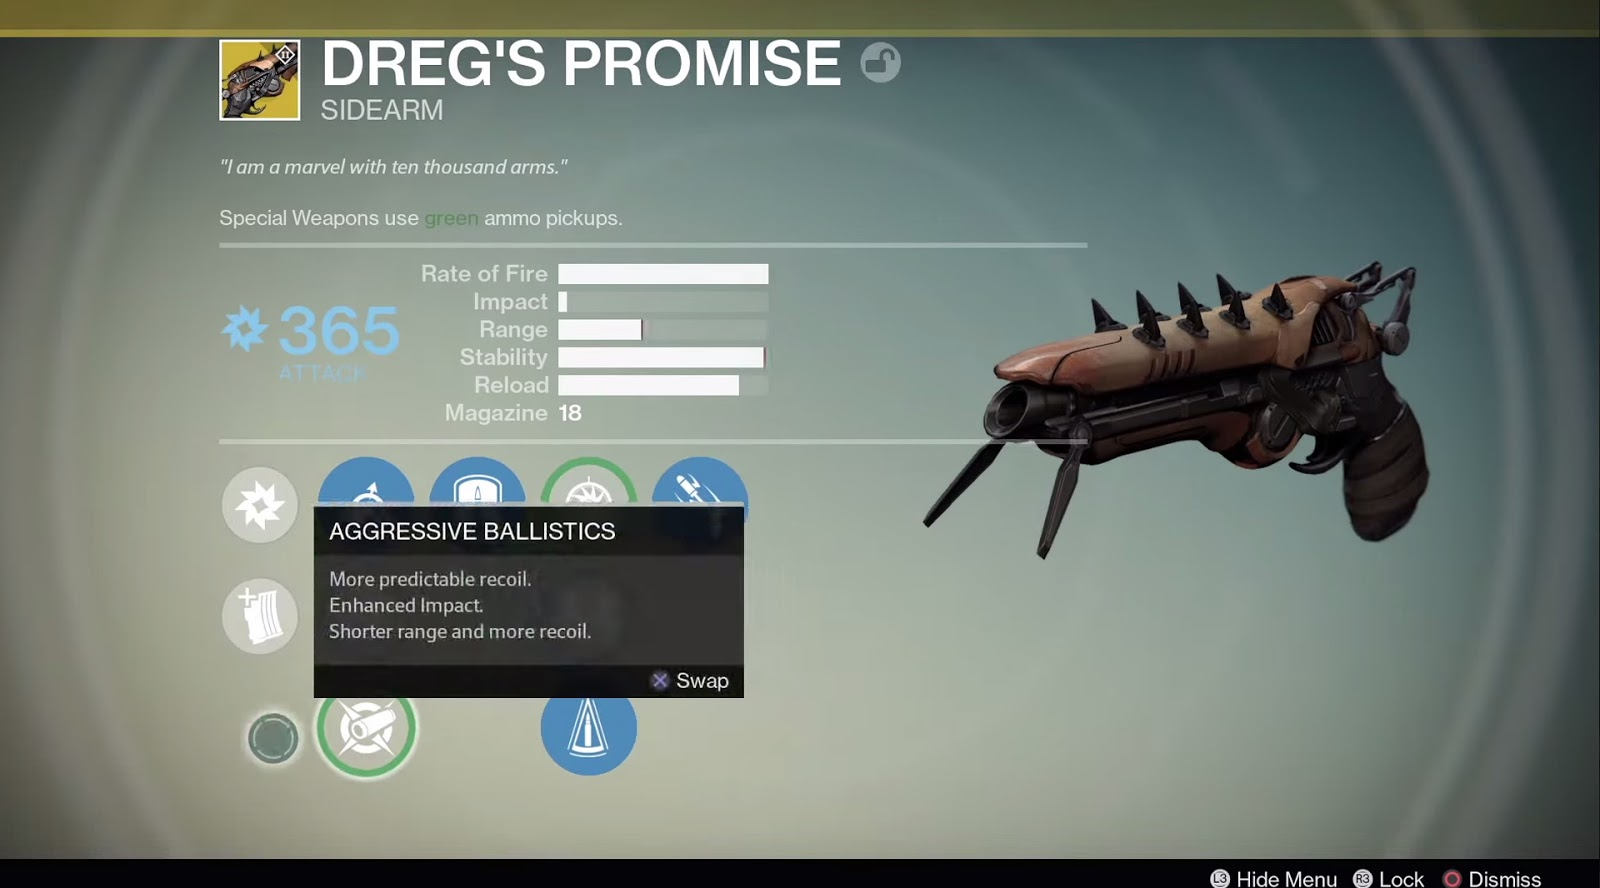 House of wolves which new exotic weapon should you choose drm